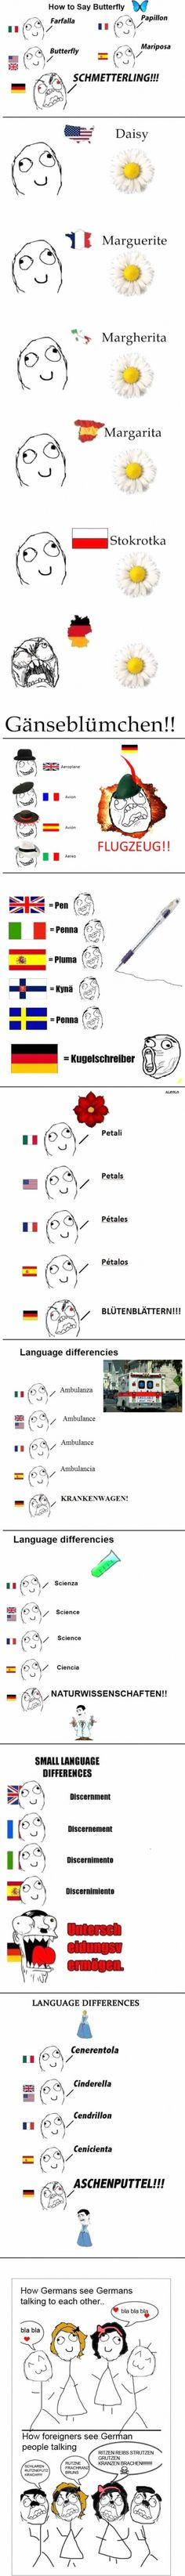 The German language. Not to be pc but the mustache on the cartoons is a bit much for me.